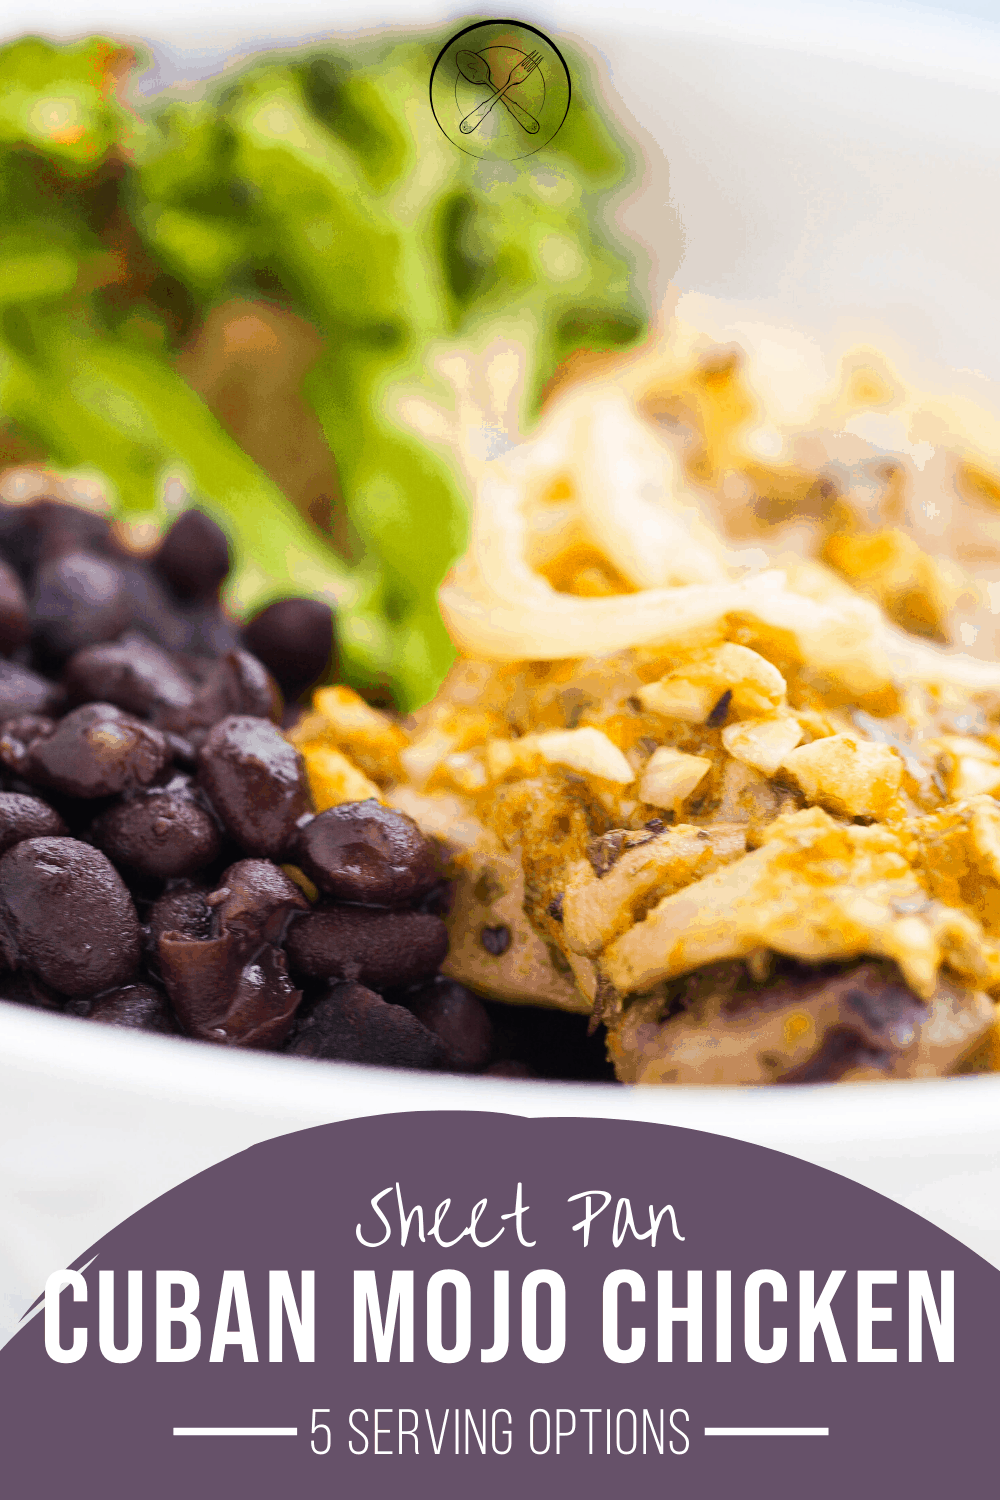 A pinterest pin for Cuban mojo chicken. The picture is an image of the chicken next to black beans and broccoli.